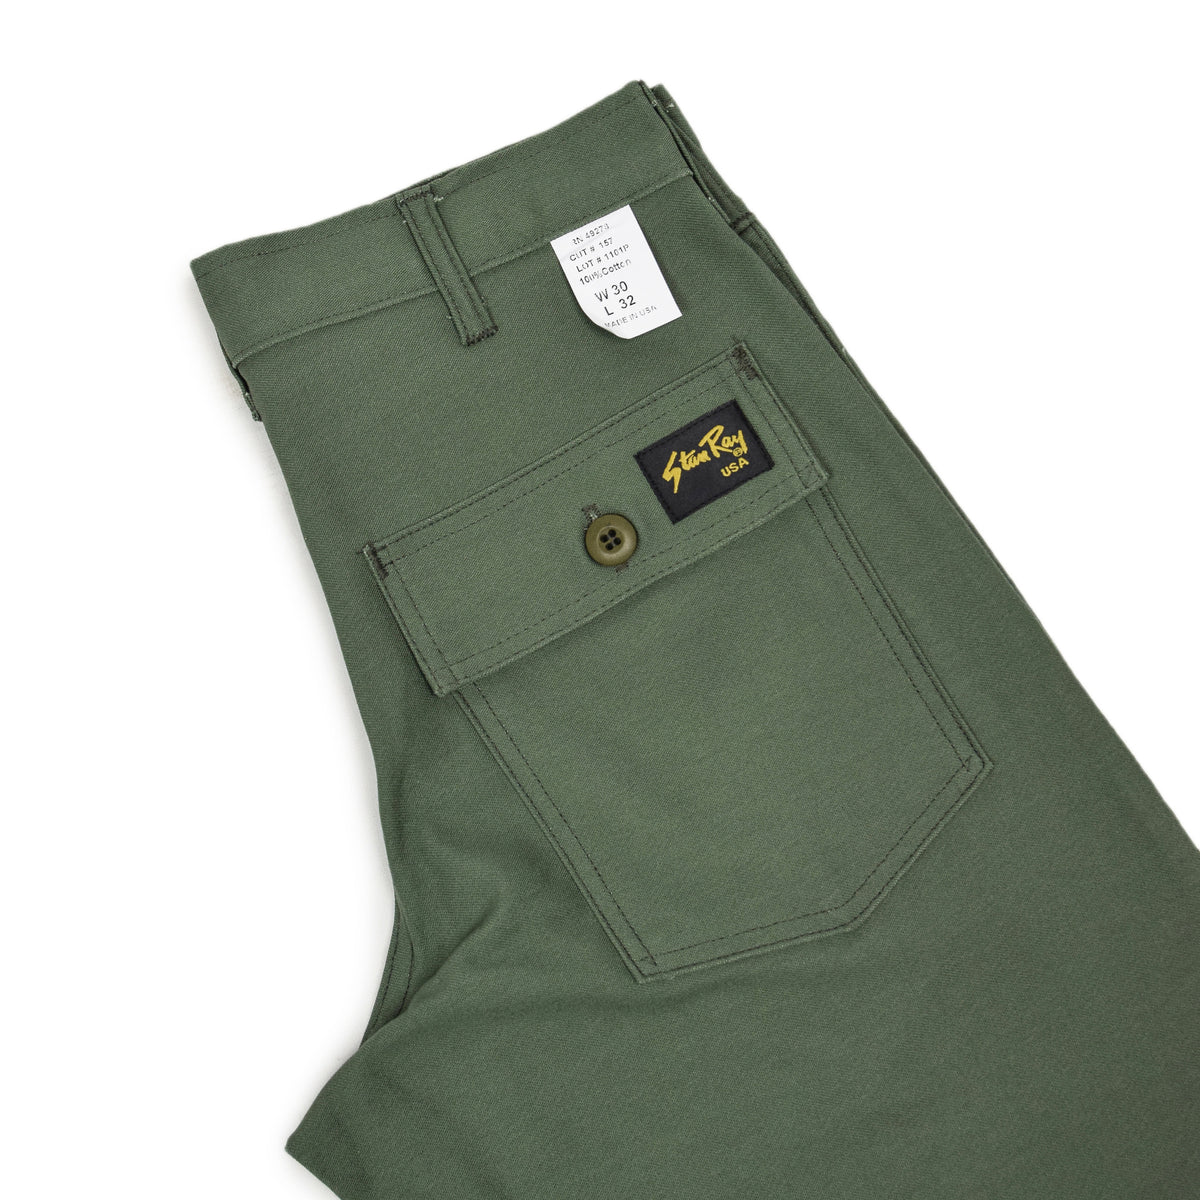 Stan Ray OG Loose Fatigue Trouser Olive Sateen Made in USA back pocket